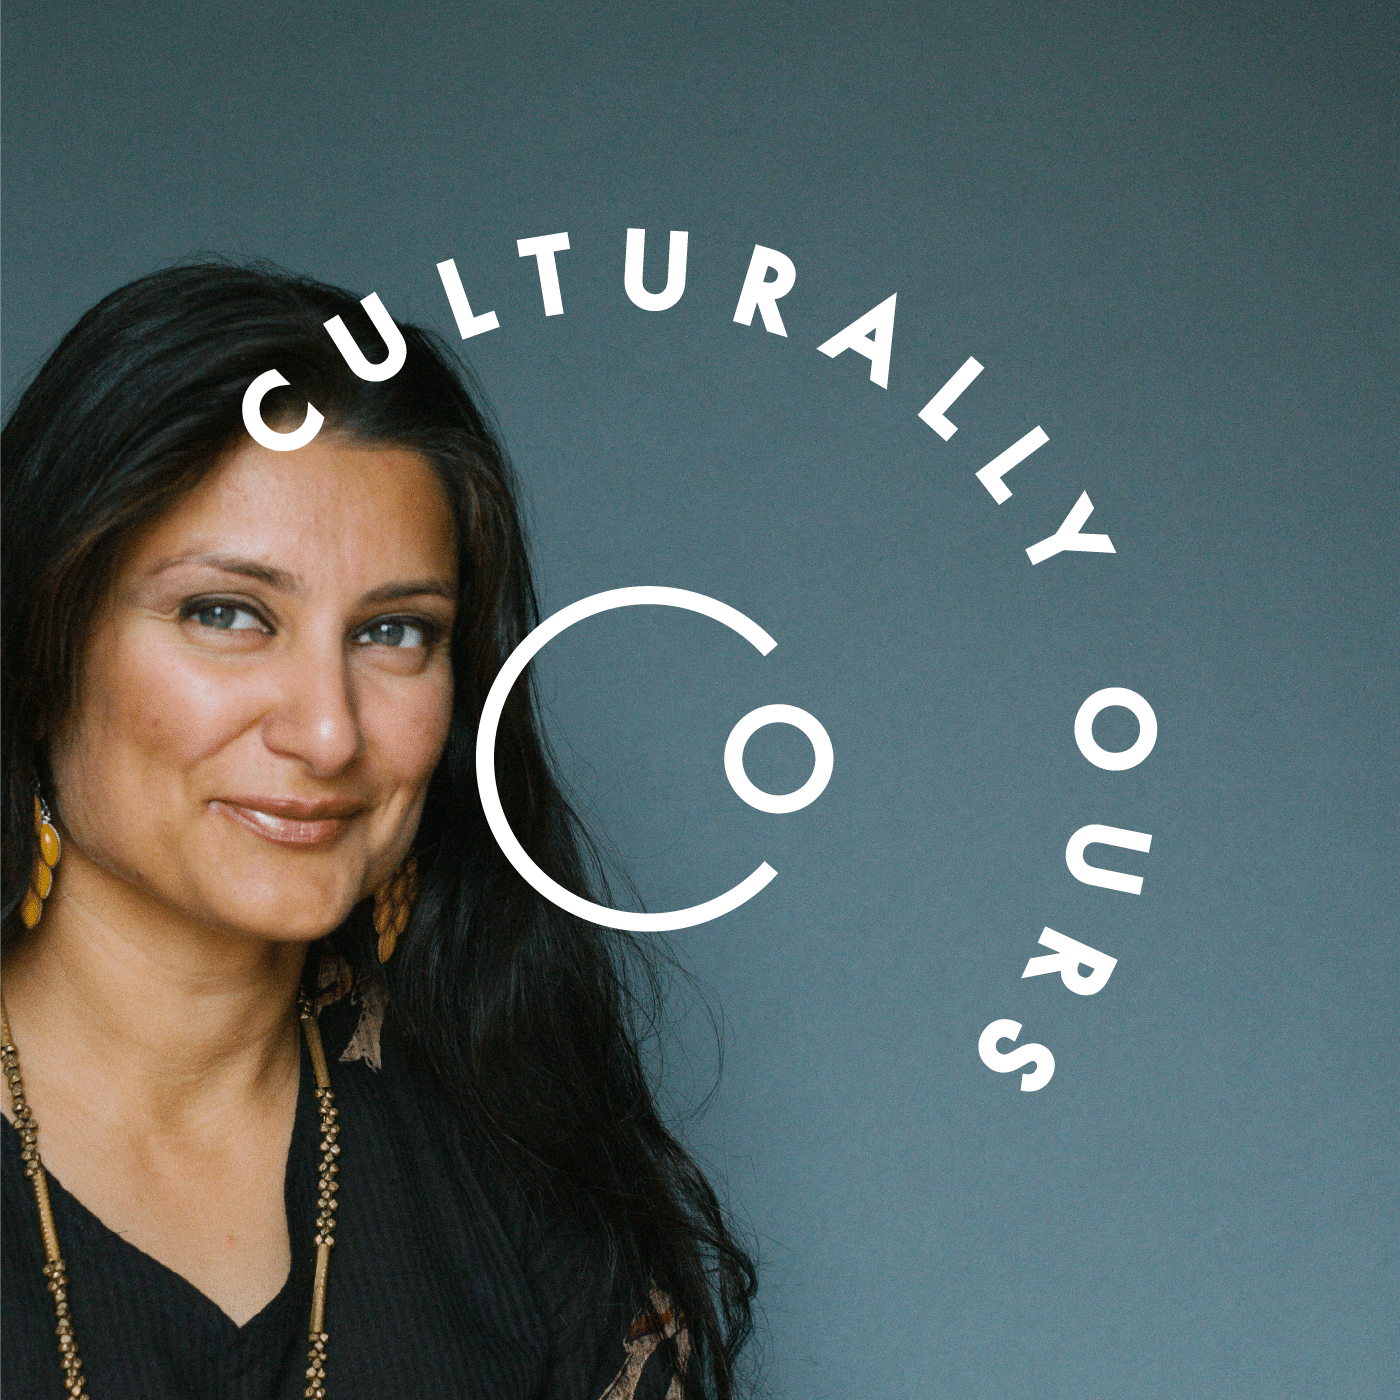 Ari Krzyzek on Culturally Ours Podcasts